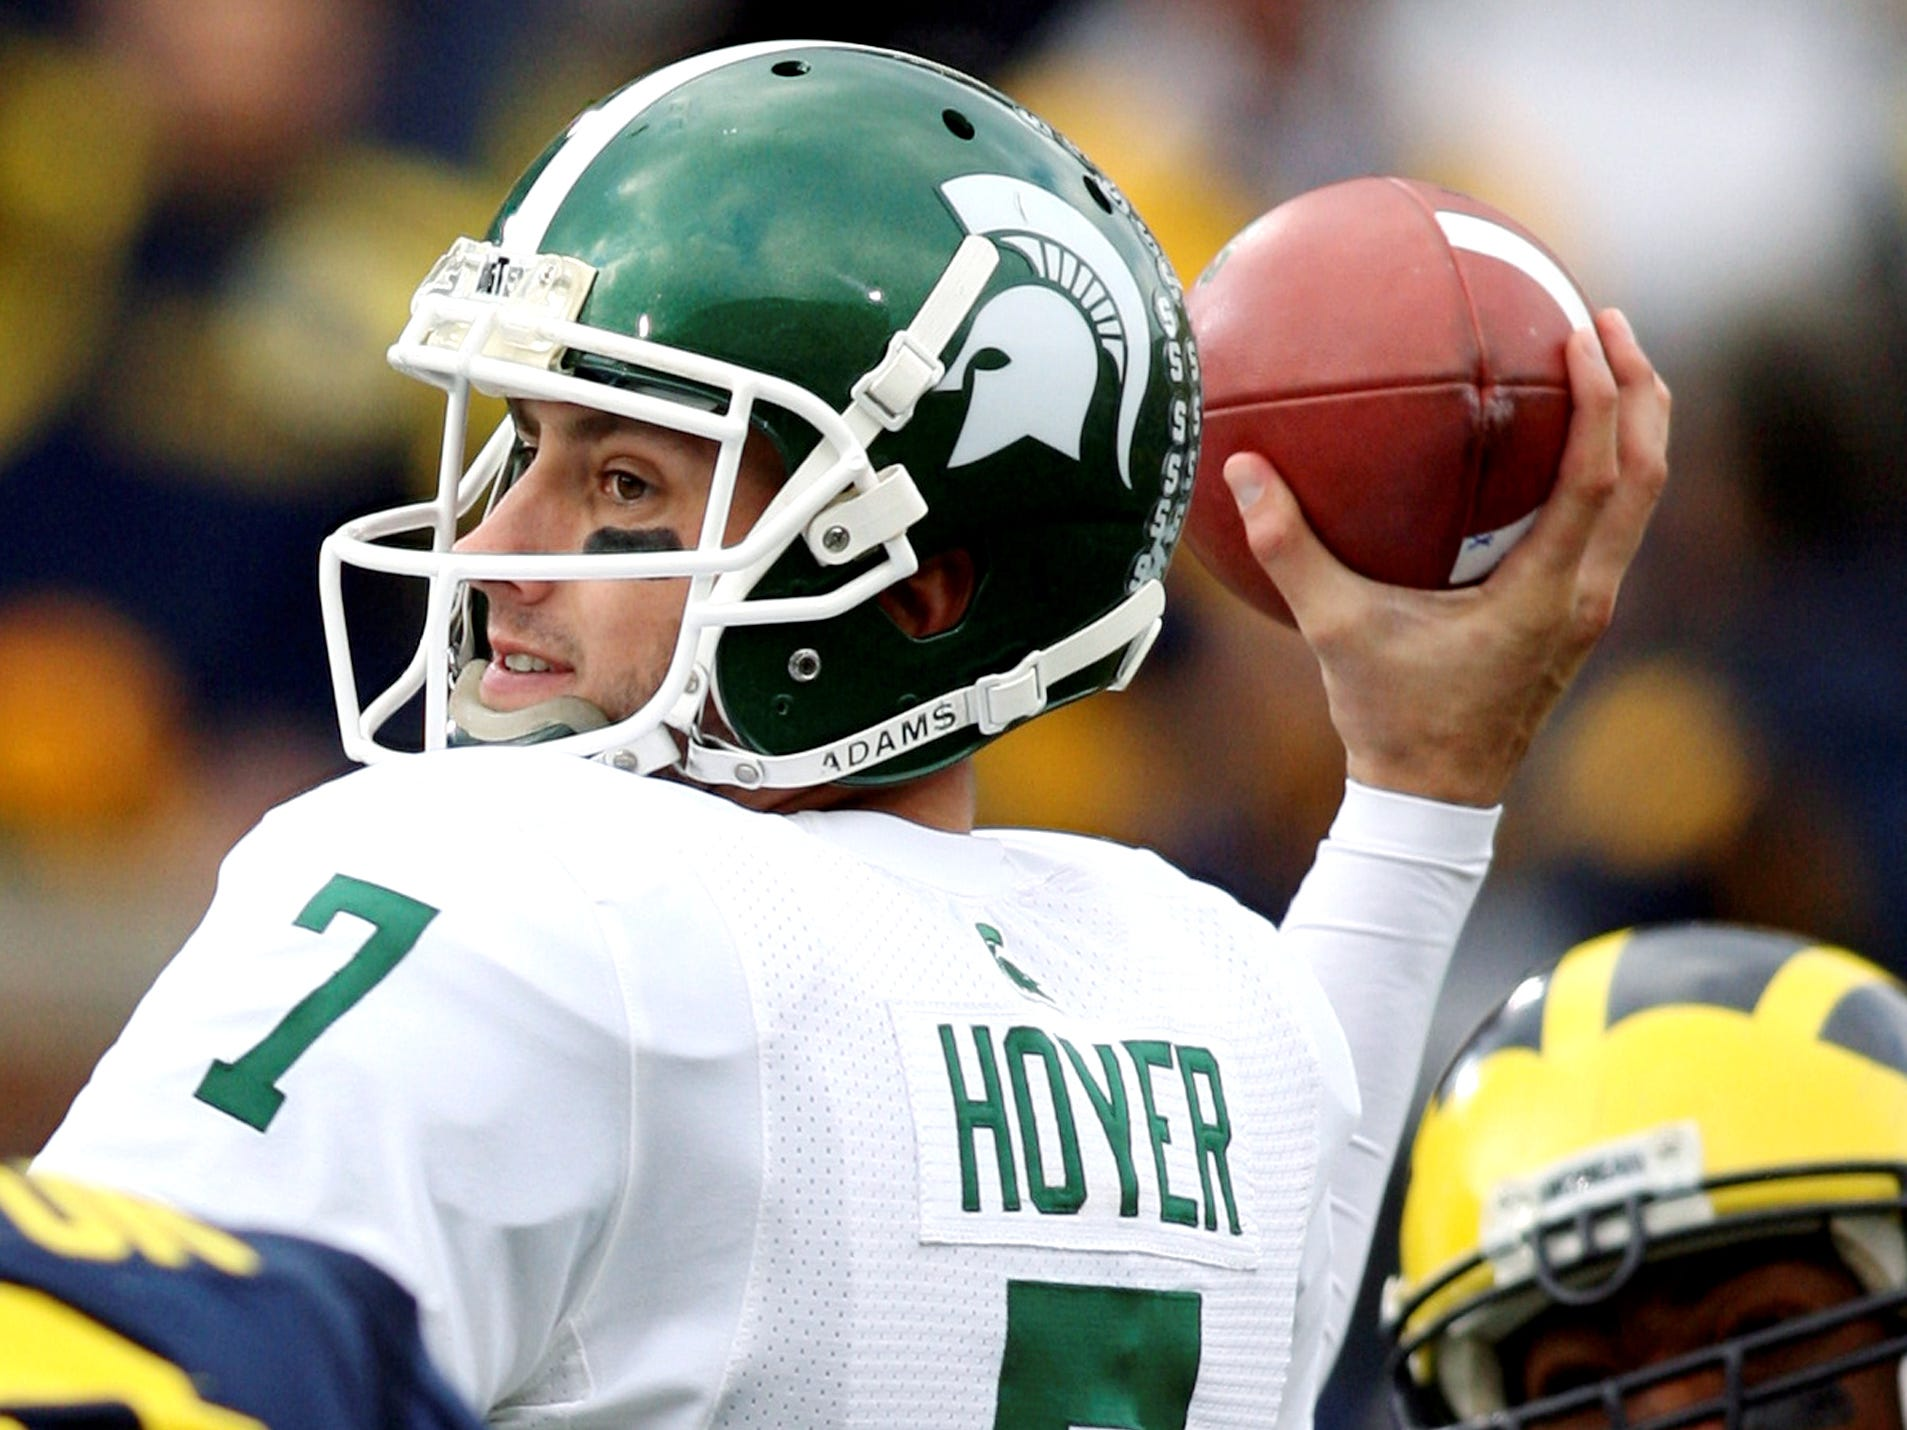 Michigan State quarterback Brian Hoyer (7) looks downfield during the first quarter of an NCAA college football game against Michigan in Ann Arbor, Mich., Saturday, Oct. 25, 2008.